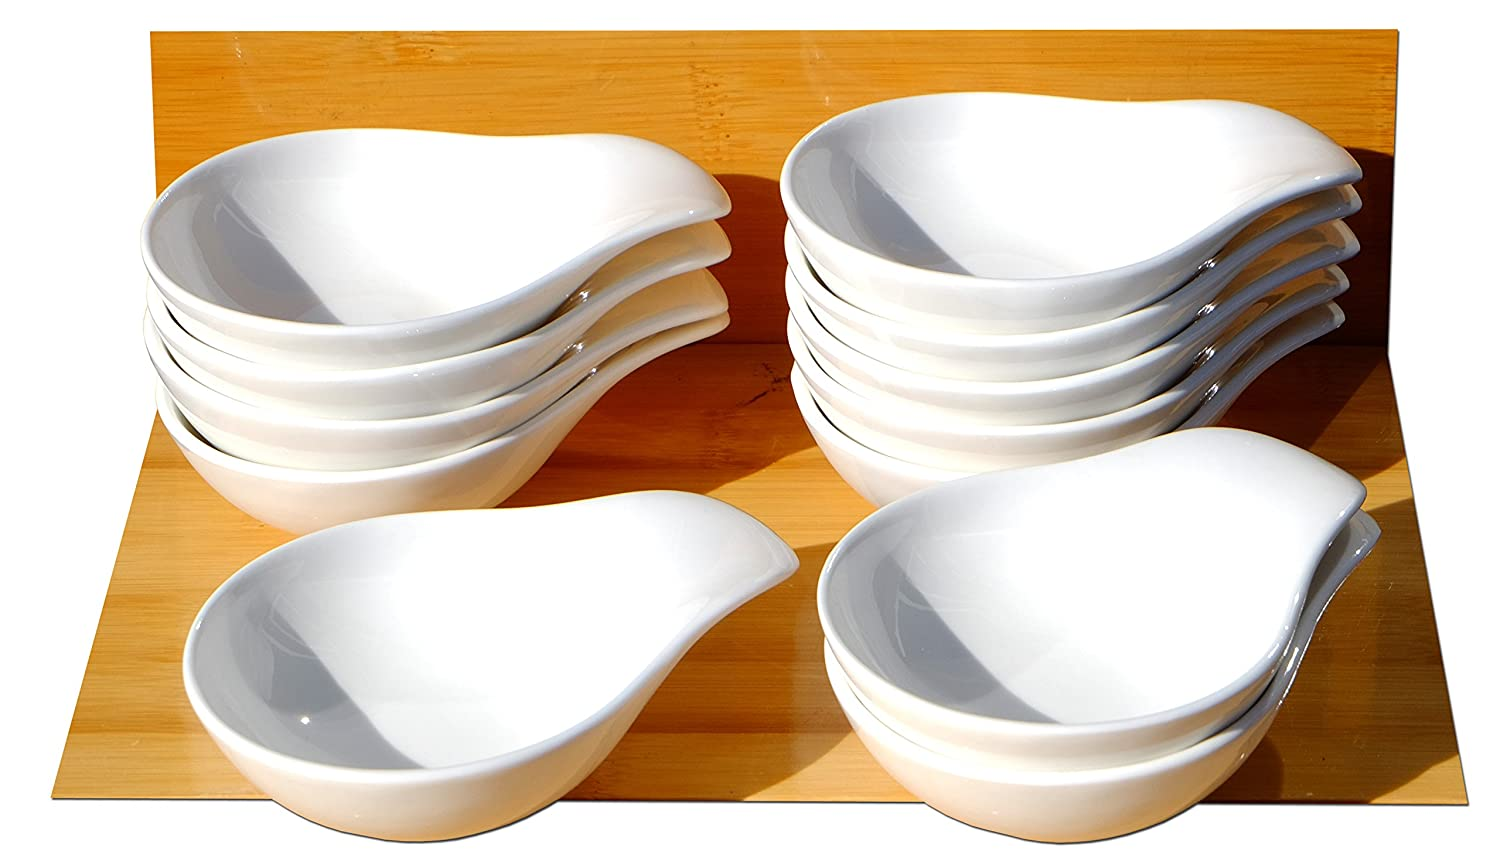 Canapé spoons sauce and condiment dishes round handled X 12 white Gifts Of The Orient GOTO